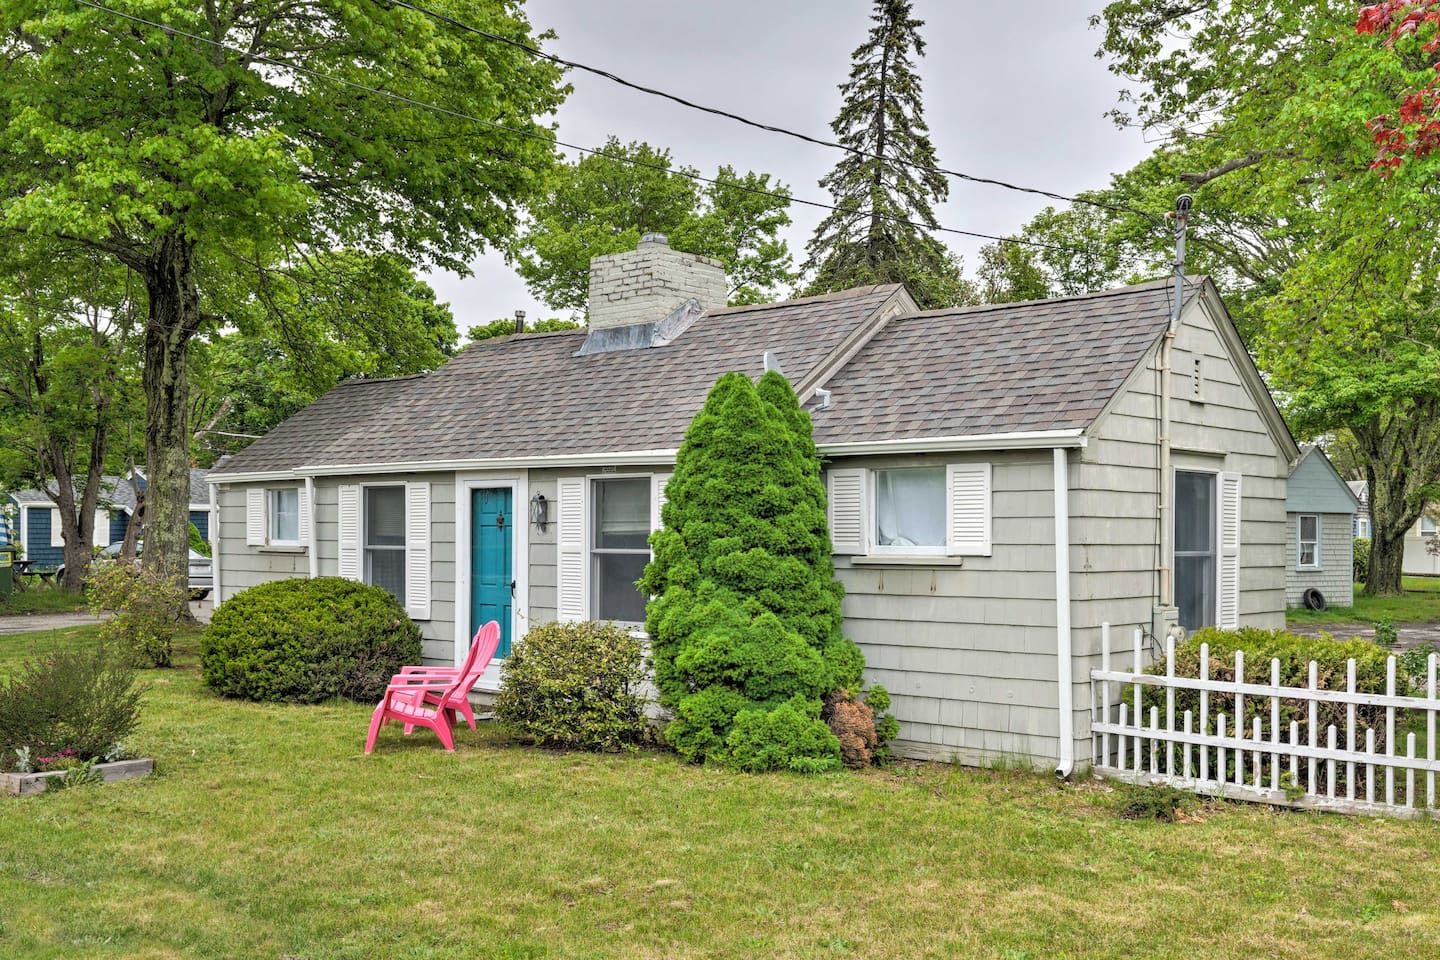 Book a trip to this charming vacation rental cottage in Barnstable.